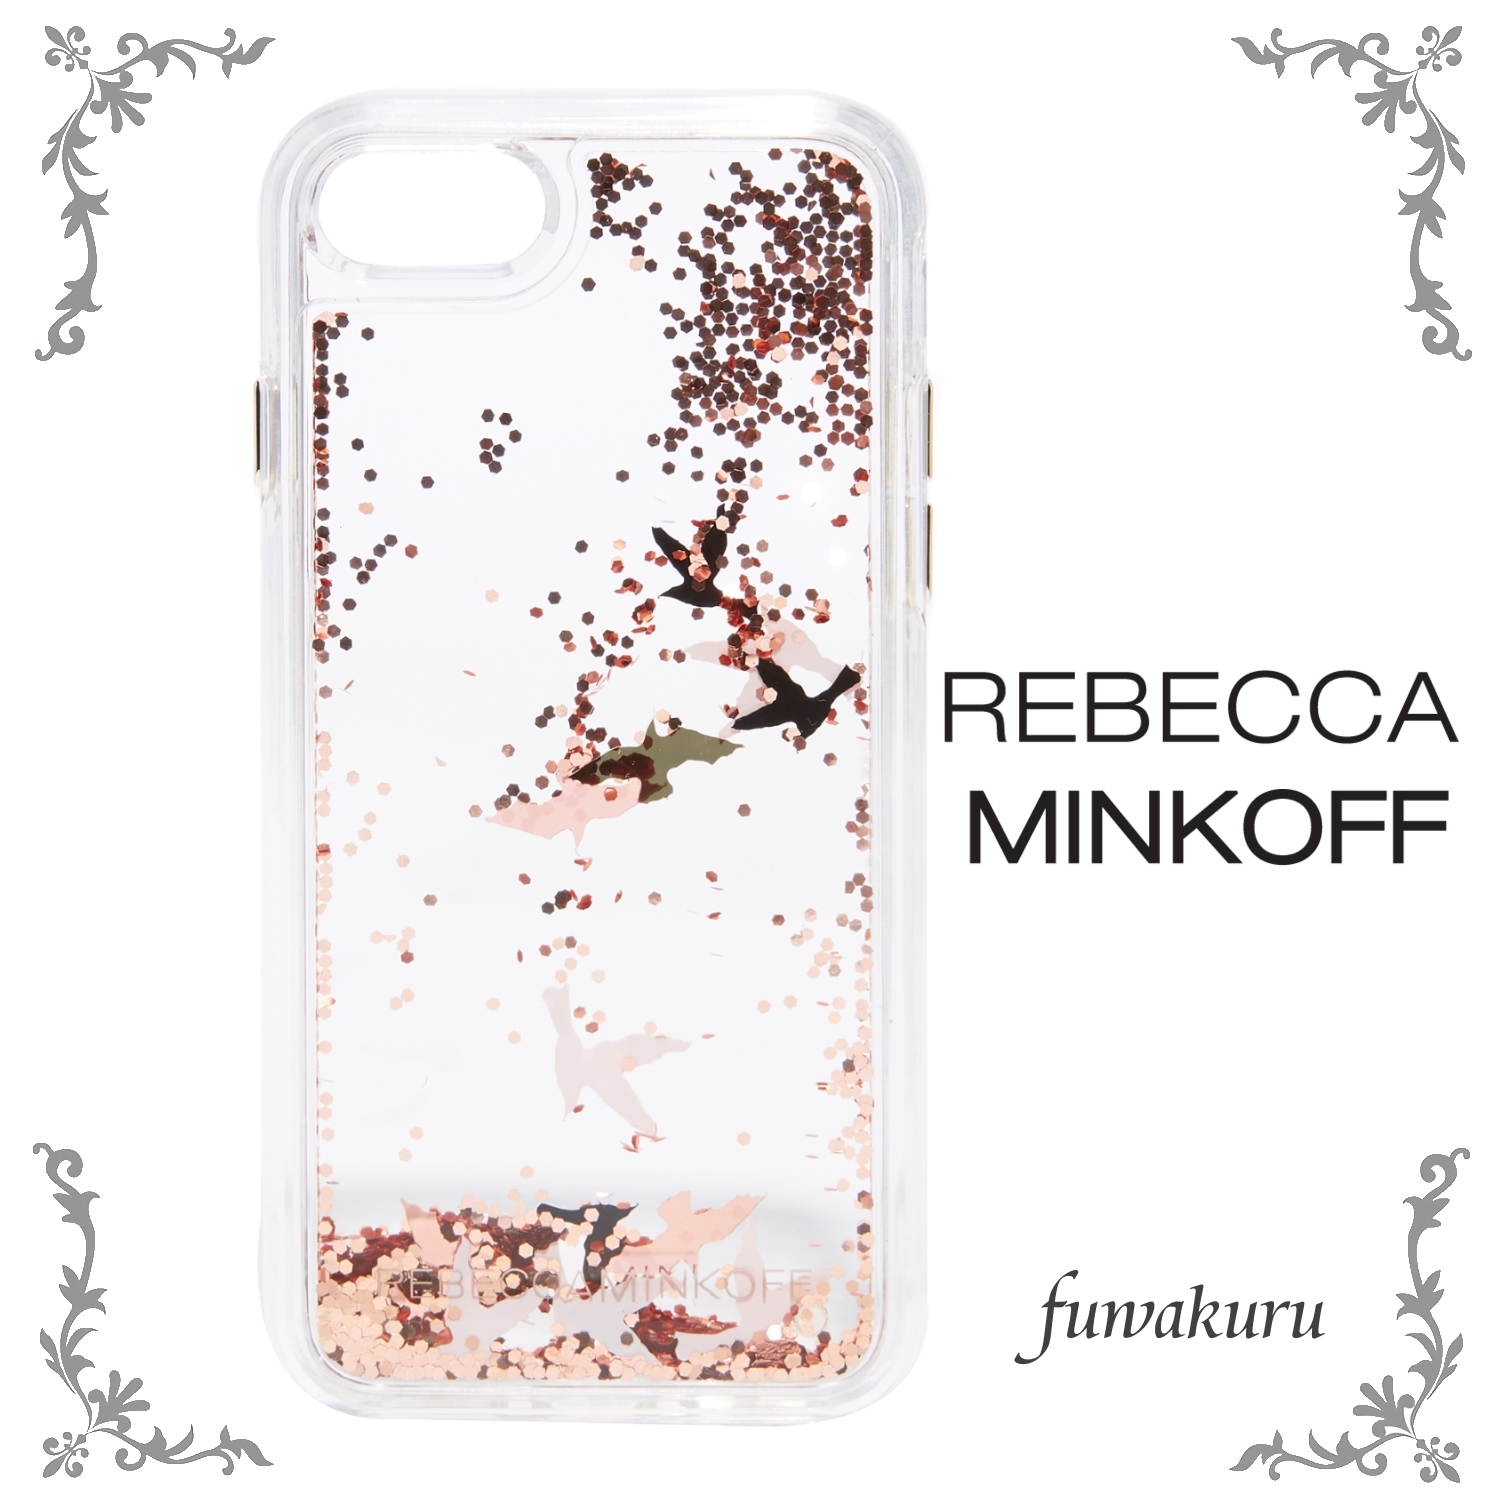 【Rebecca Minkoff】Birds Glitterfall iPhone 7 Case